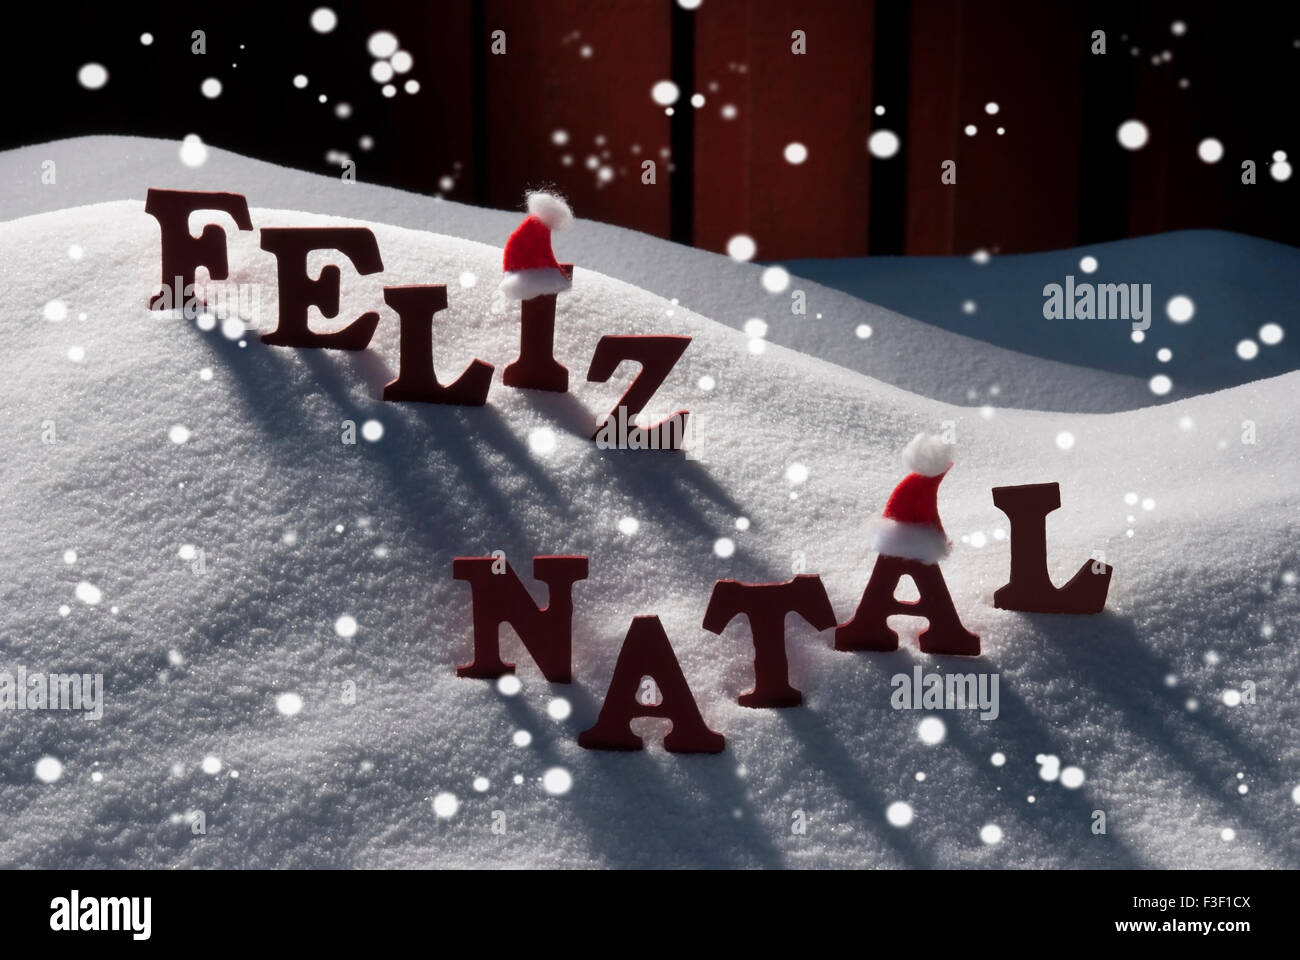 card with santa hatsnowflake feliz natale mean merry christmas stock image - What Does The Word Christmas Mean